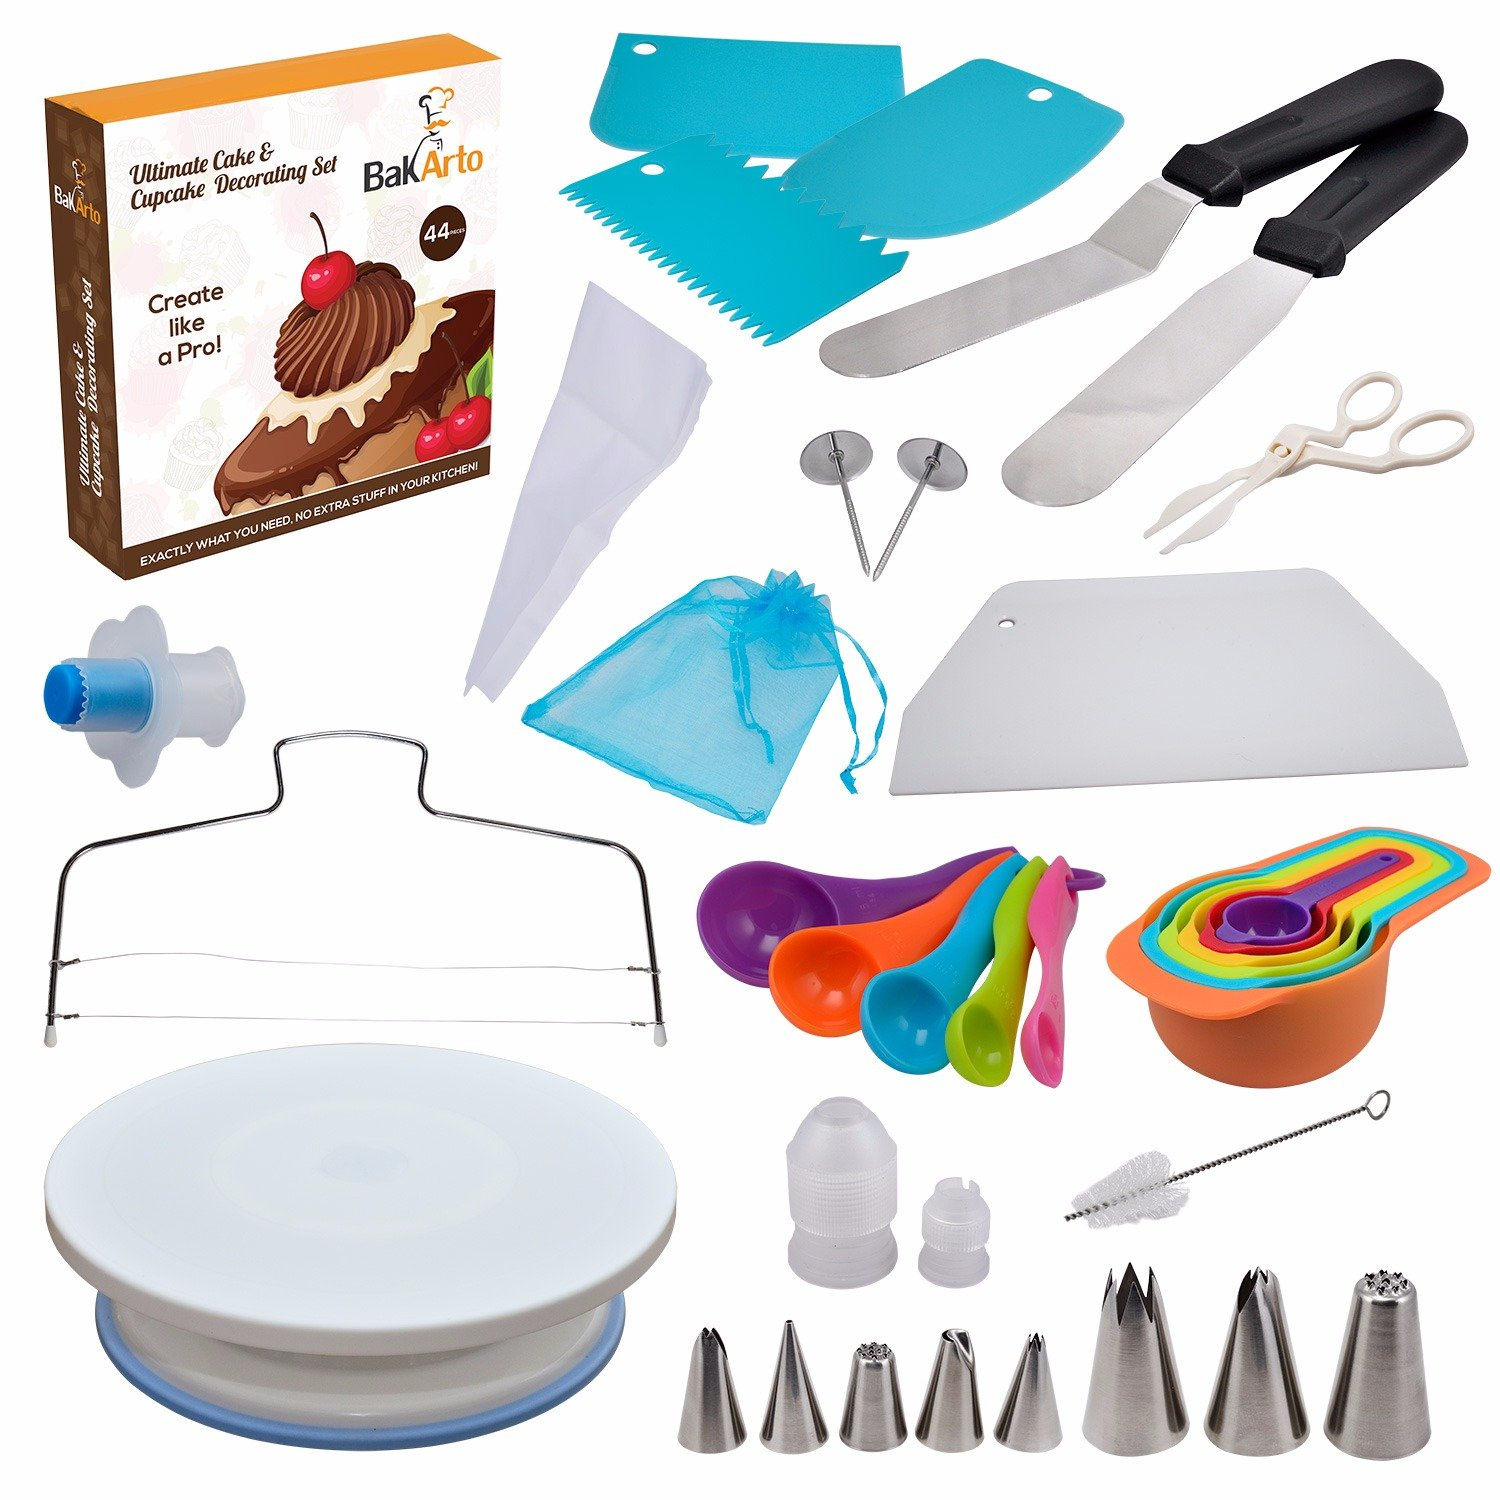 Ultimate All-in-one Cake Decorating Set for Cakes, Cupcakes, Baking Cookies and Pastries (44 Piece Decorating Set) by BakArto